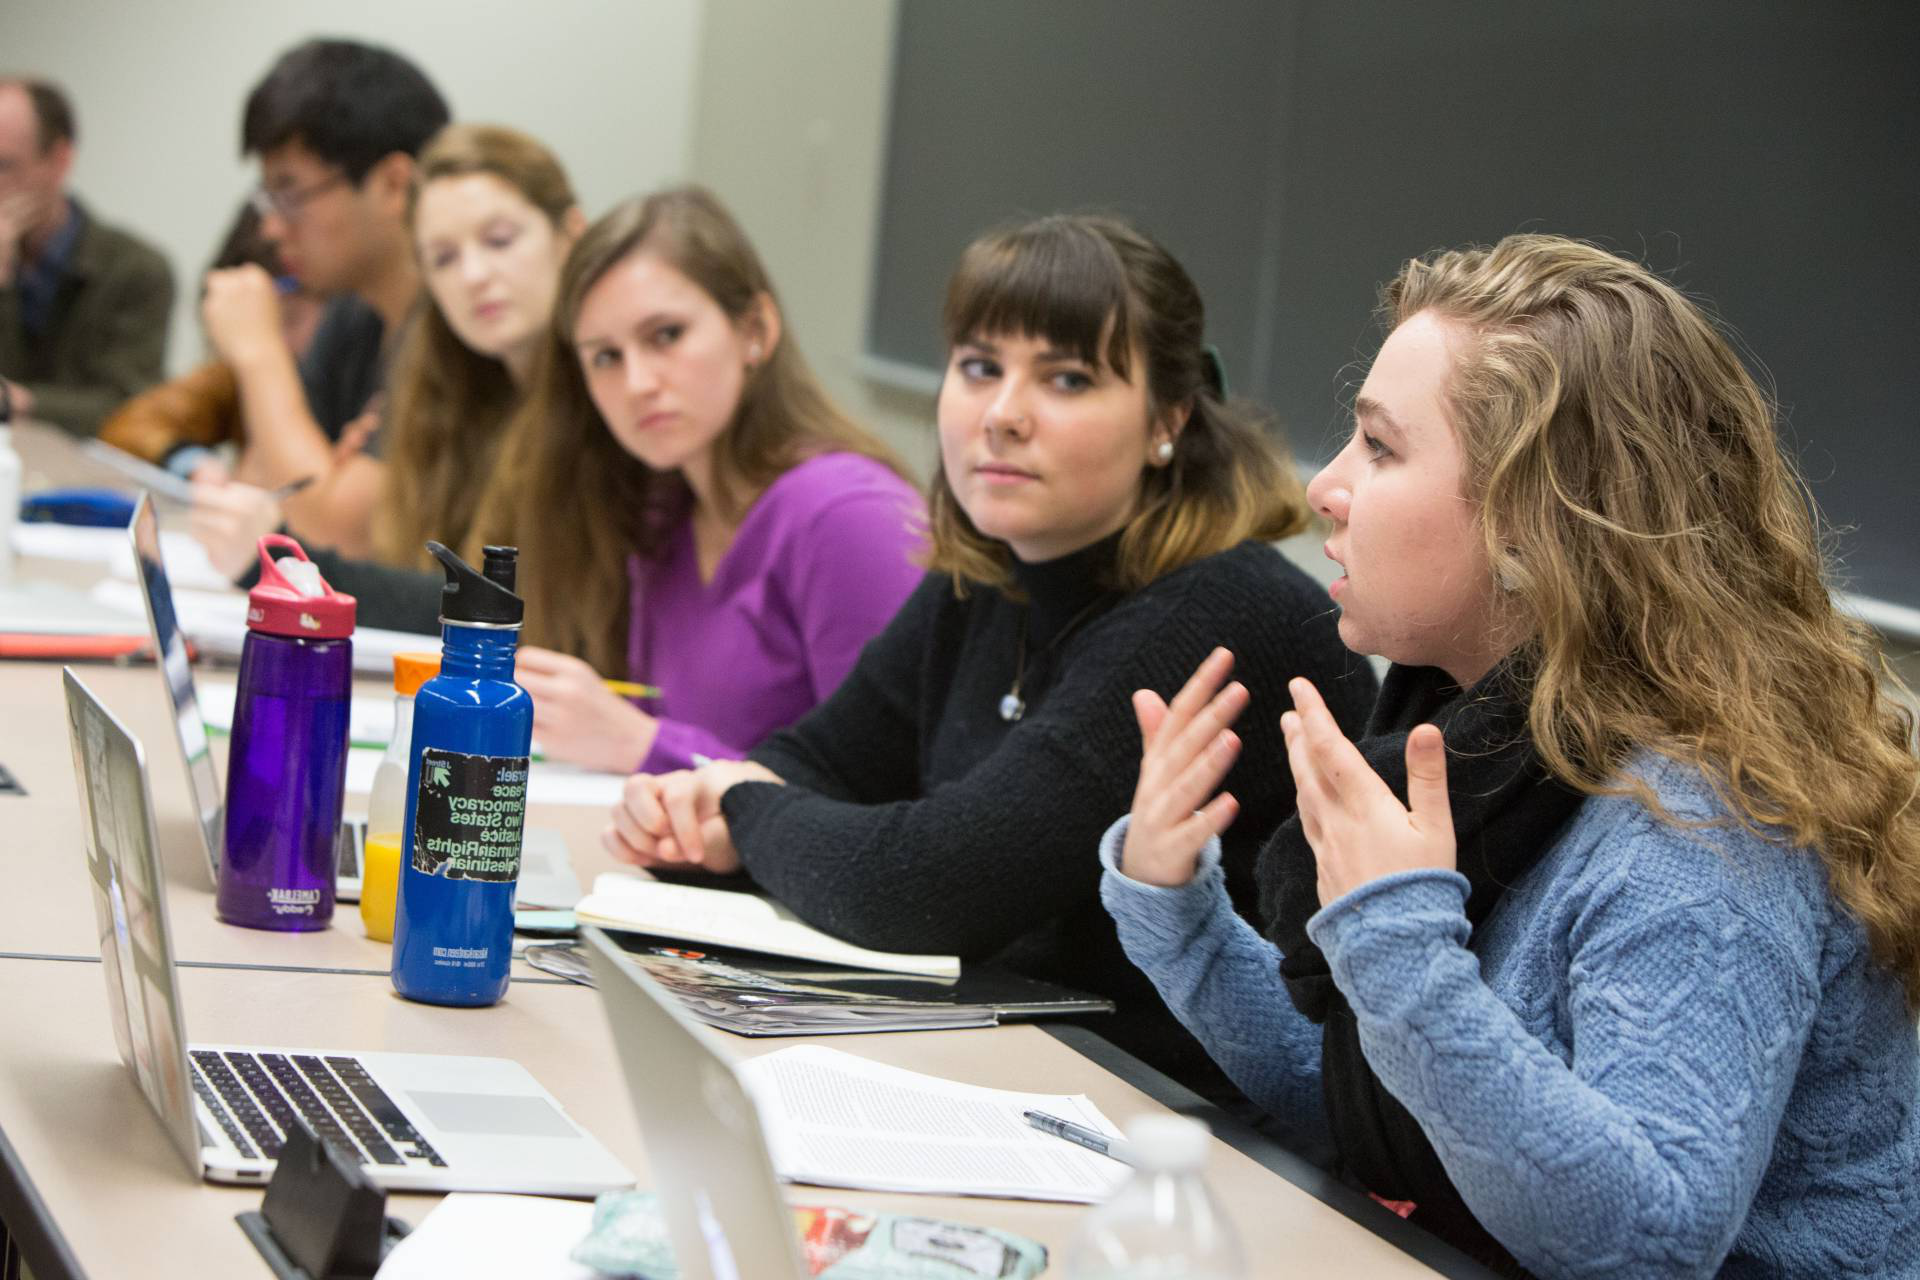 A student makes a point in a discussion with other students around a conference table in a classroom.